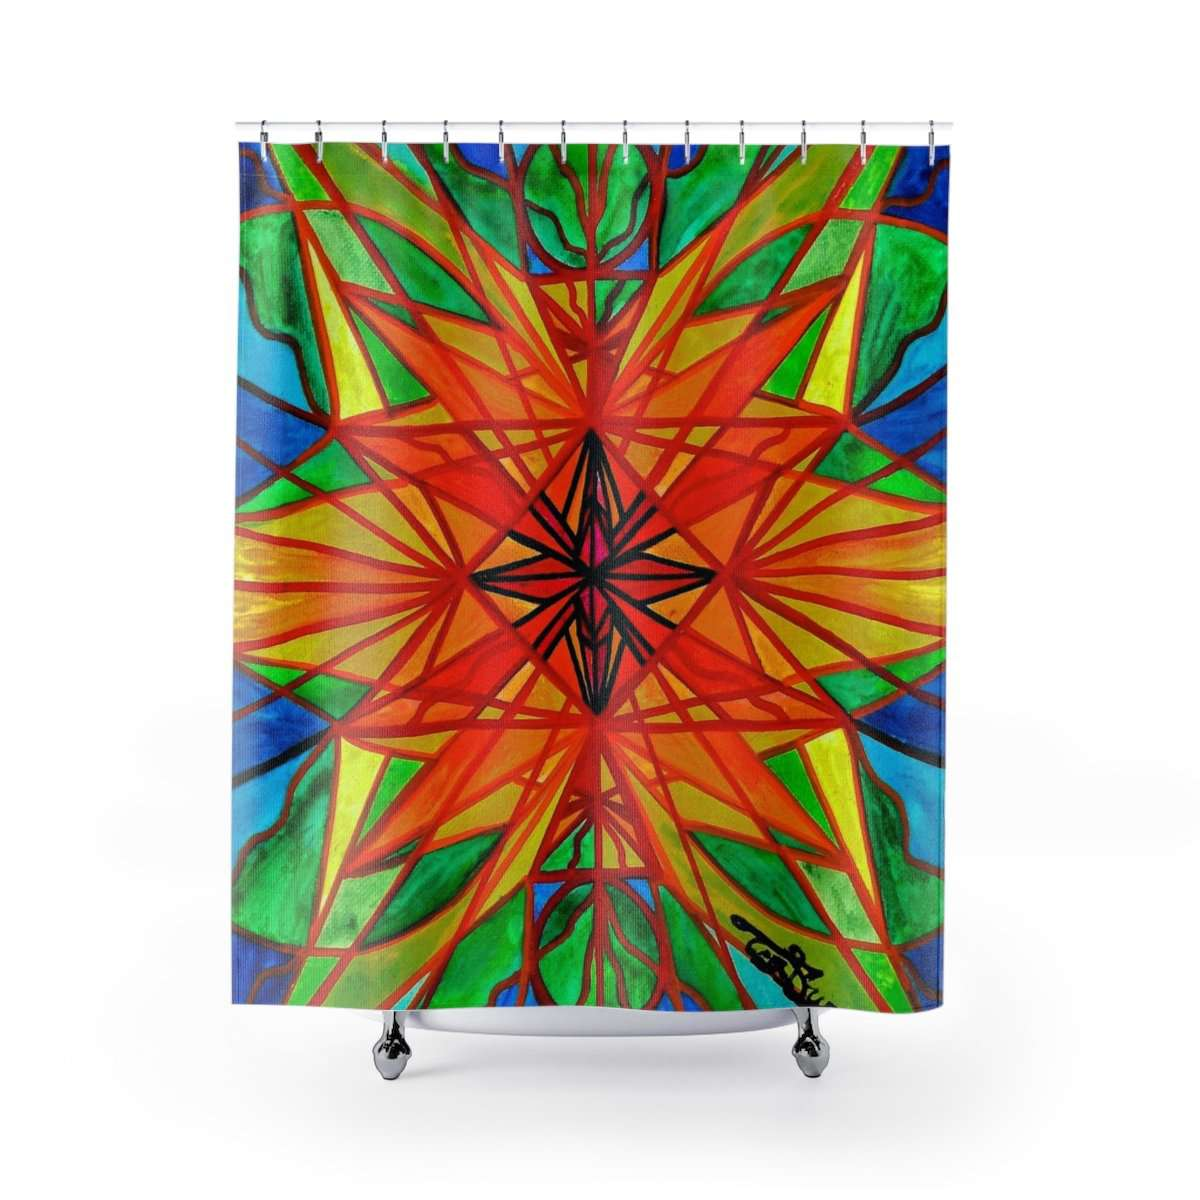 Self Liberate - Shower Curtains